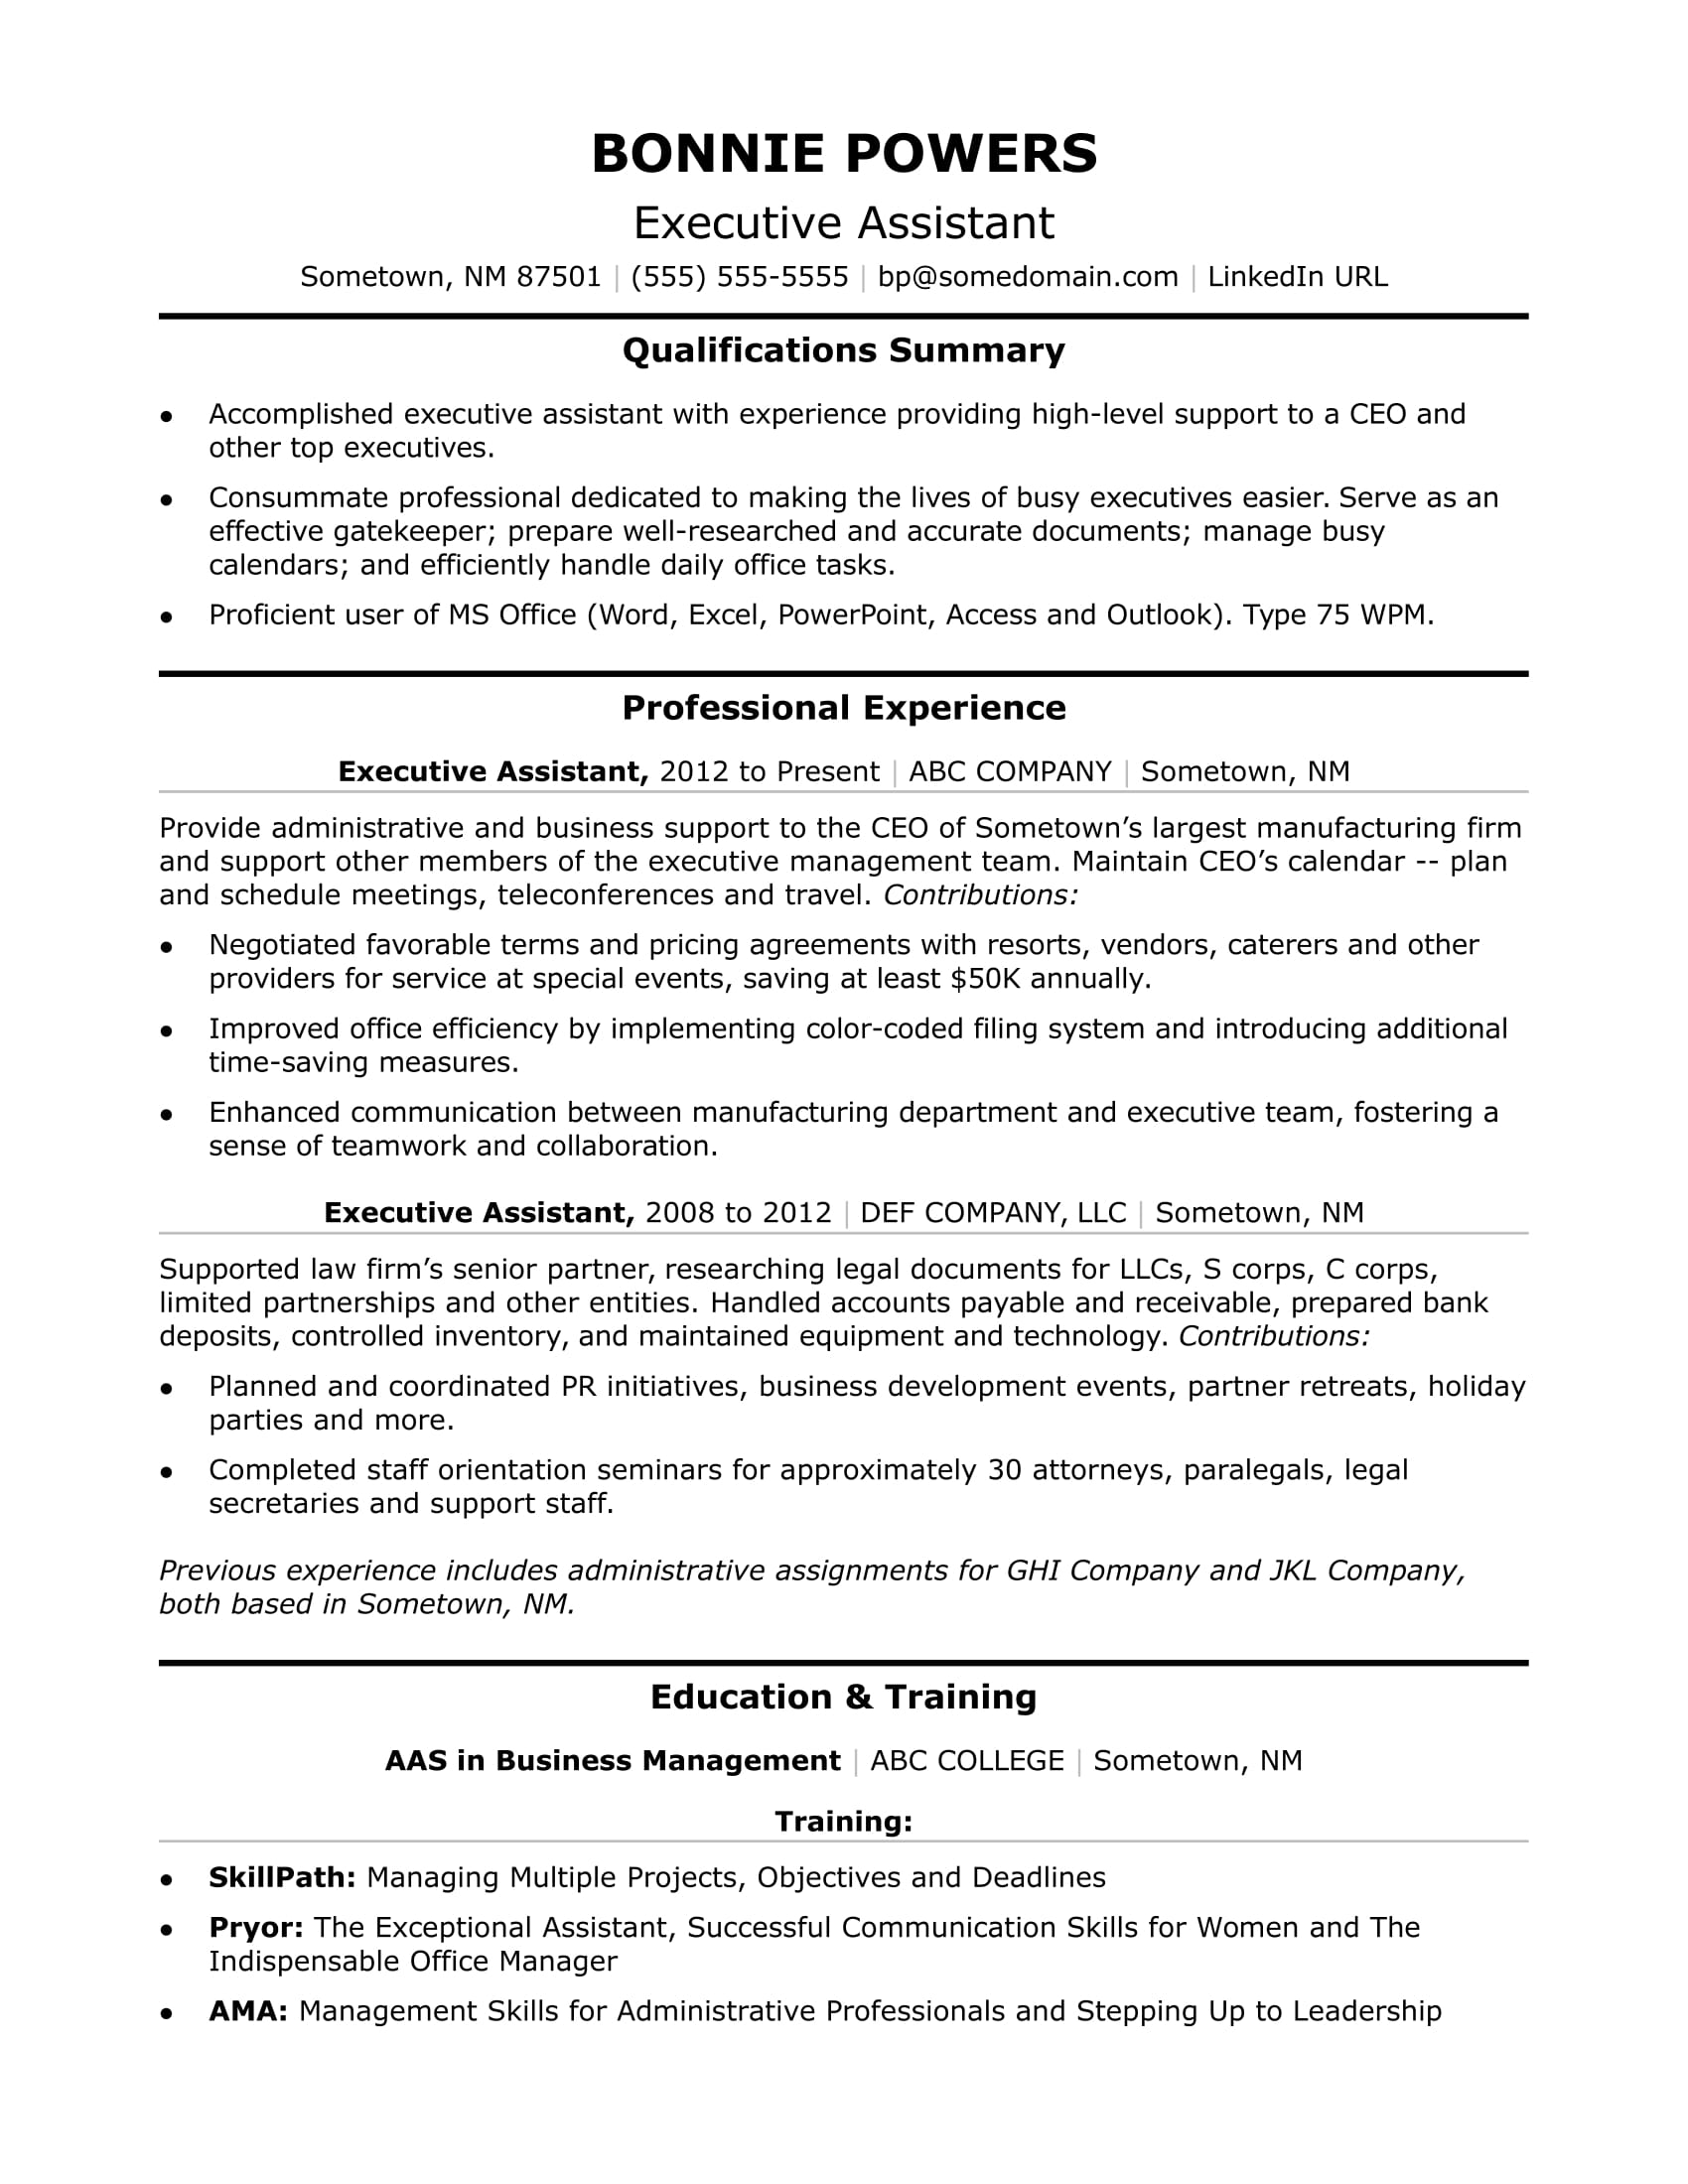 Executive Administrative Assistant Resume Sample  Executive Assistant